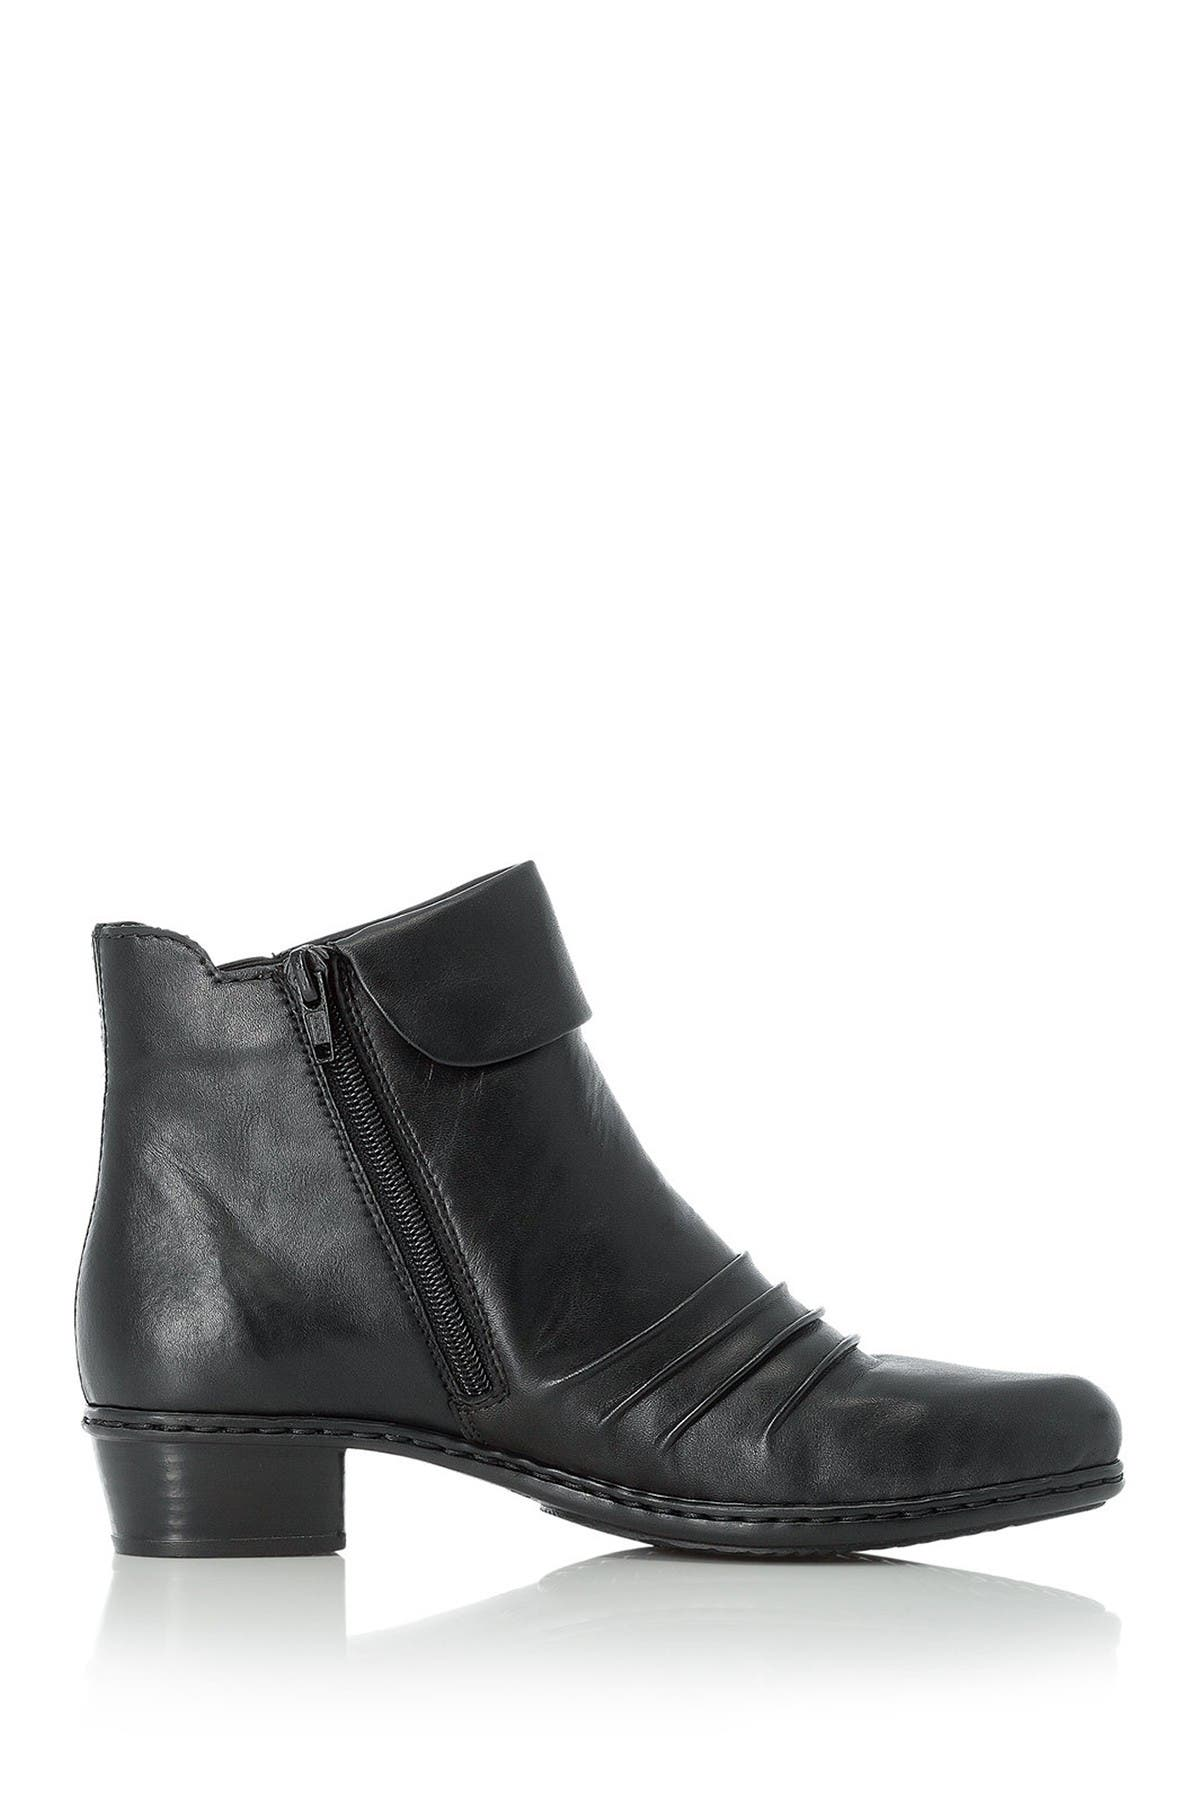 Image of Rieker Fabiola Leather Block Boot